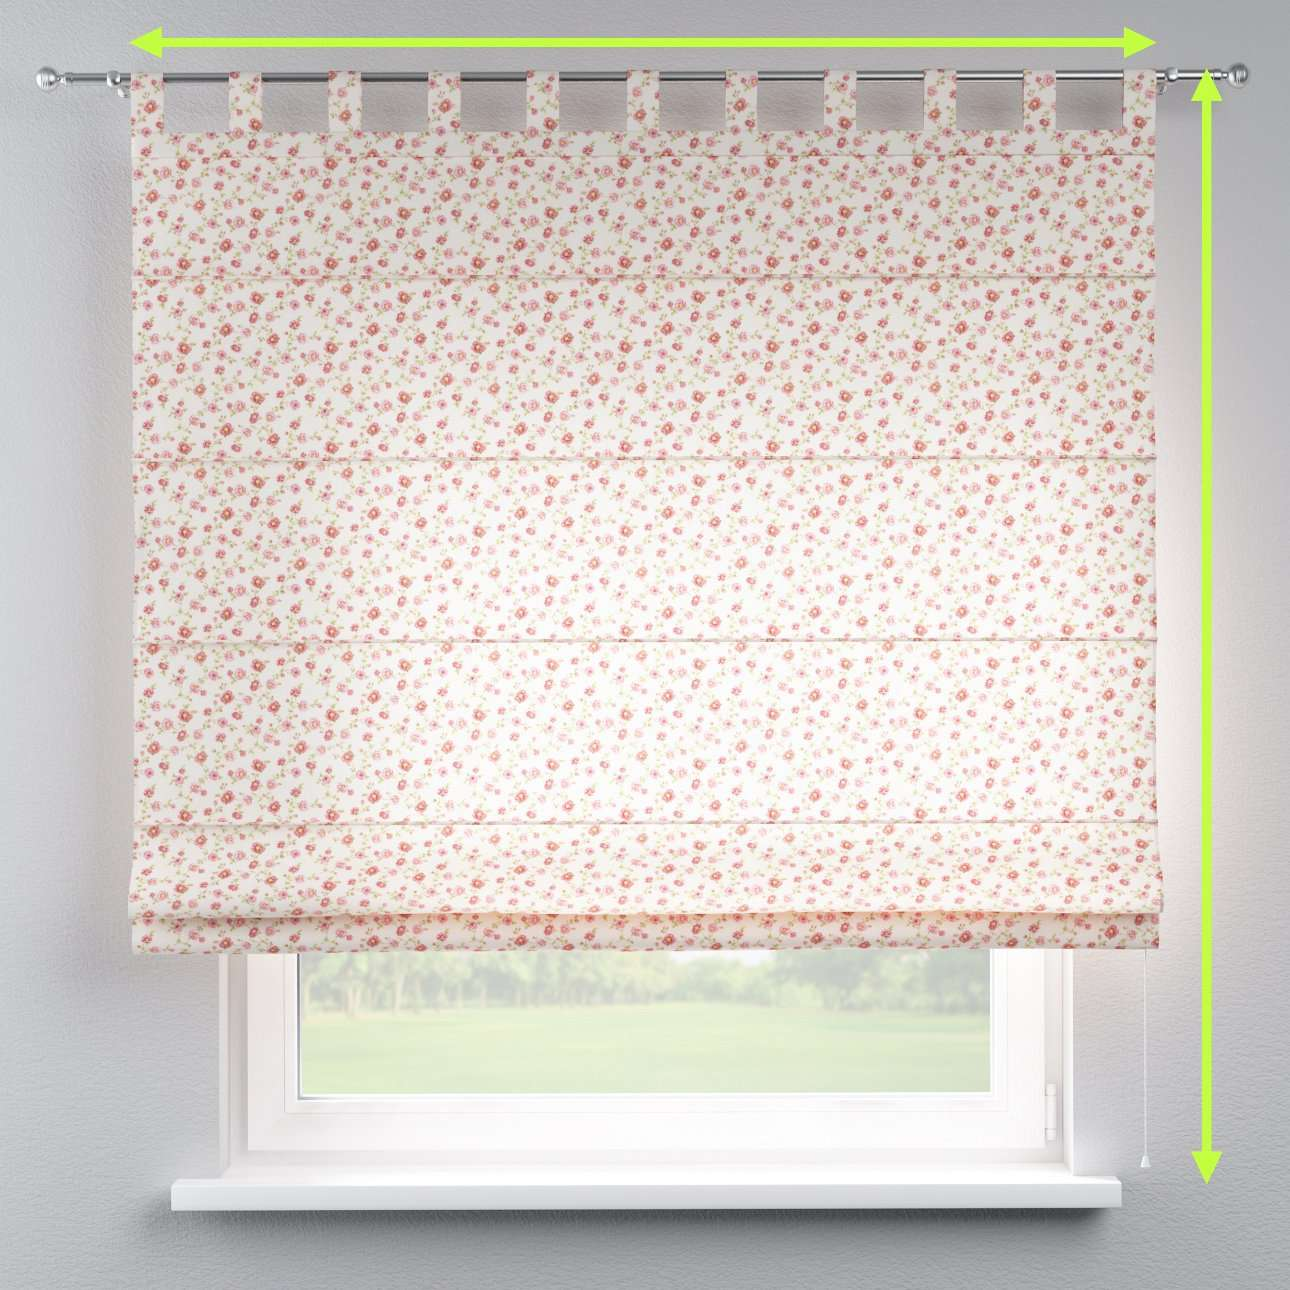 Verona tab top roman blind in collection Ashley, fabric: 137-49